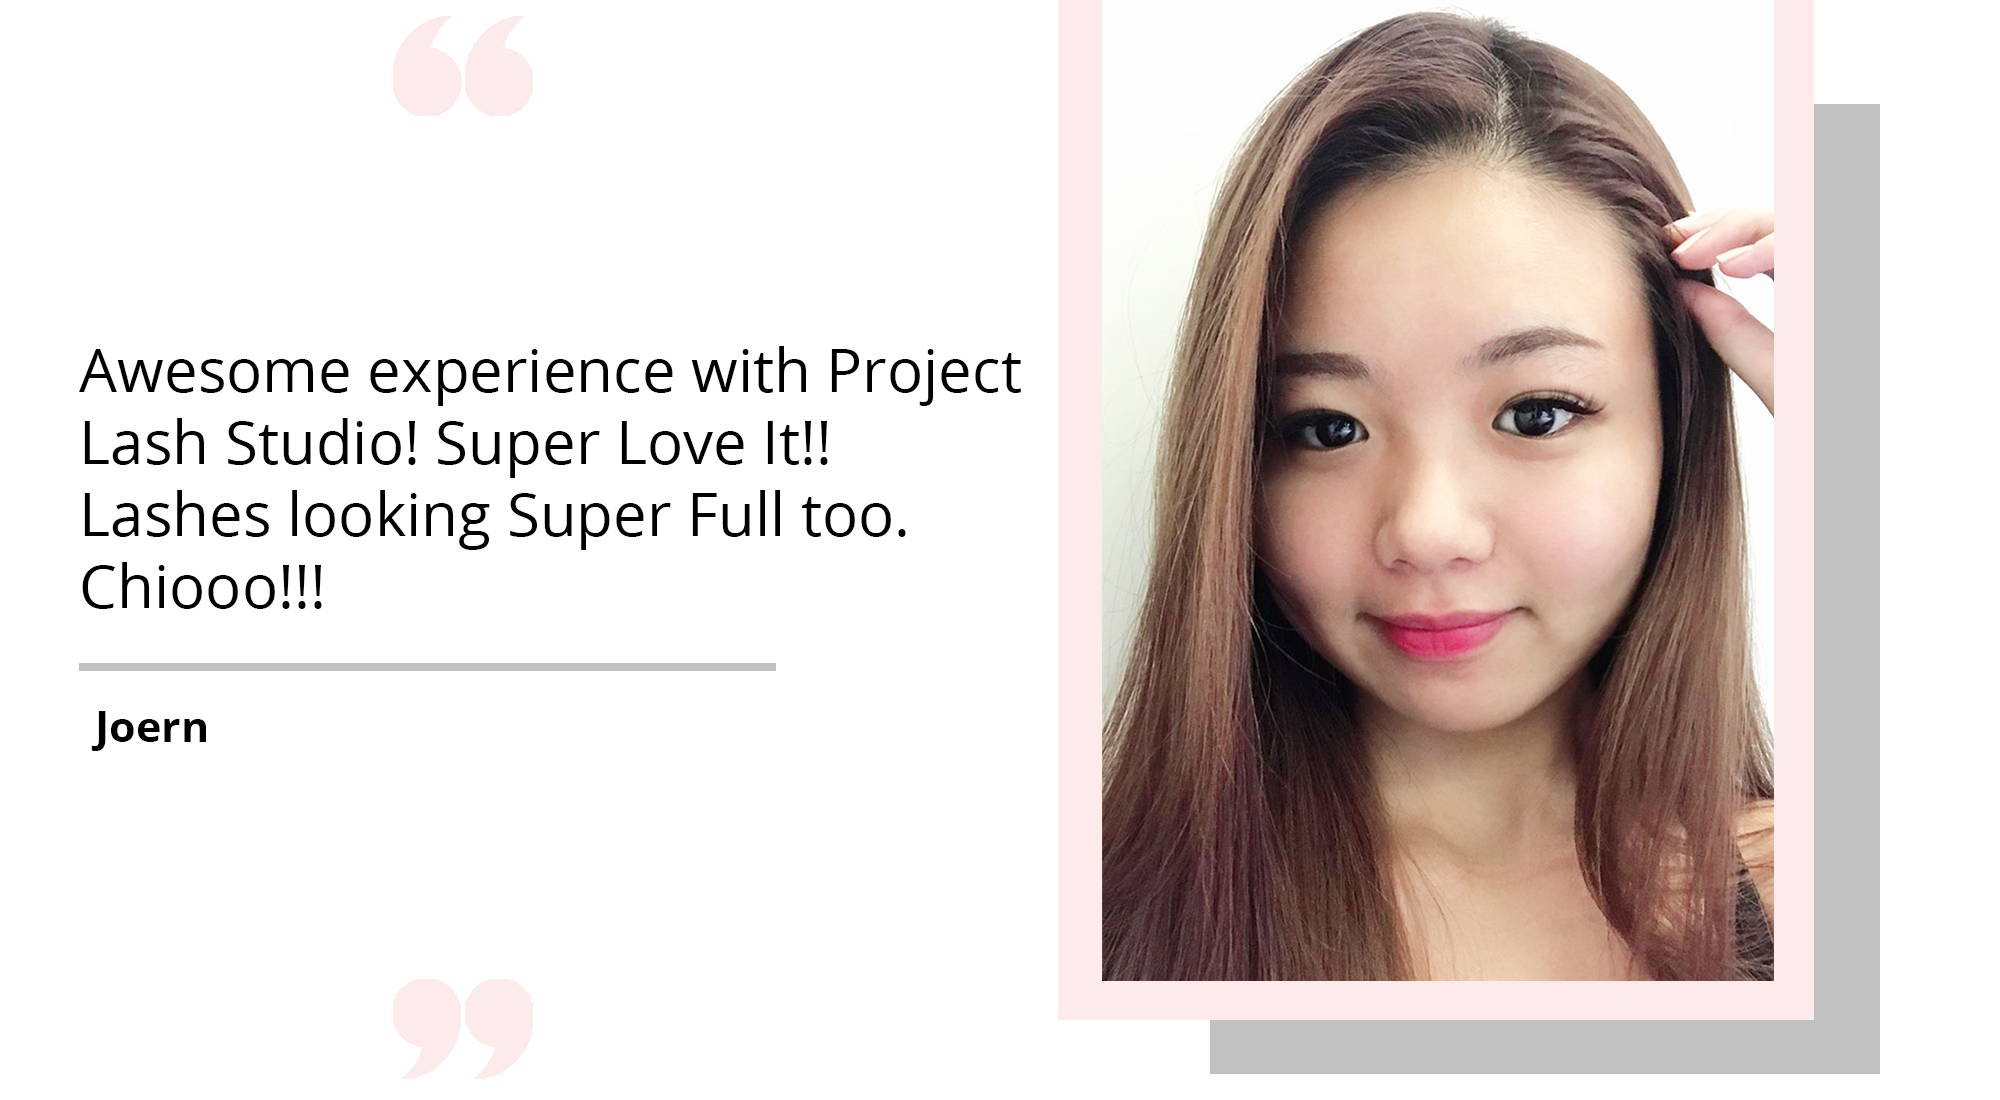 Awesome experience with Project Lash Studio Singappore - Premium Eye Lash Extension Services